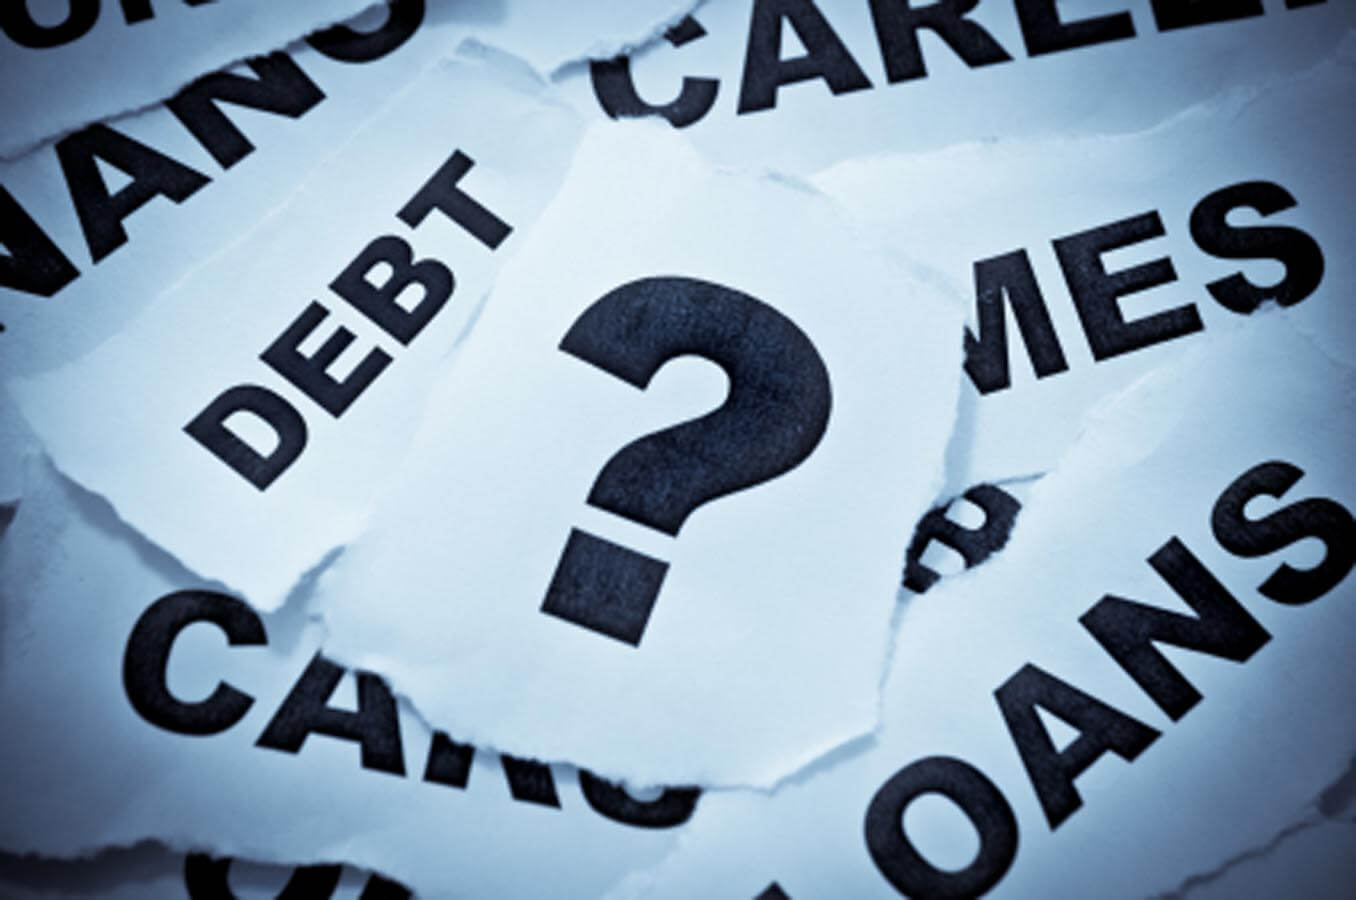 What types of debt impact your credit score?